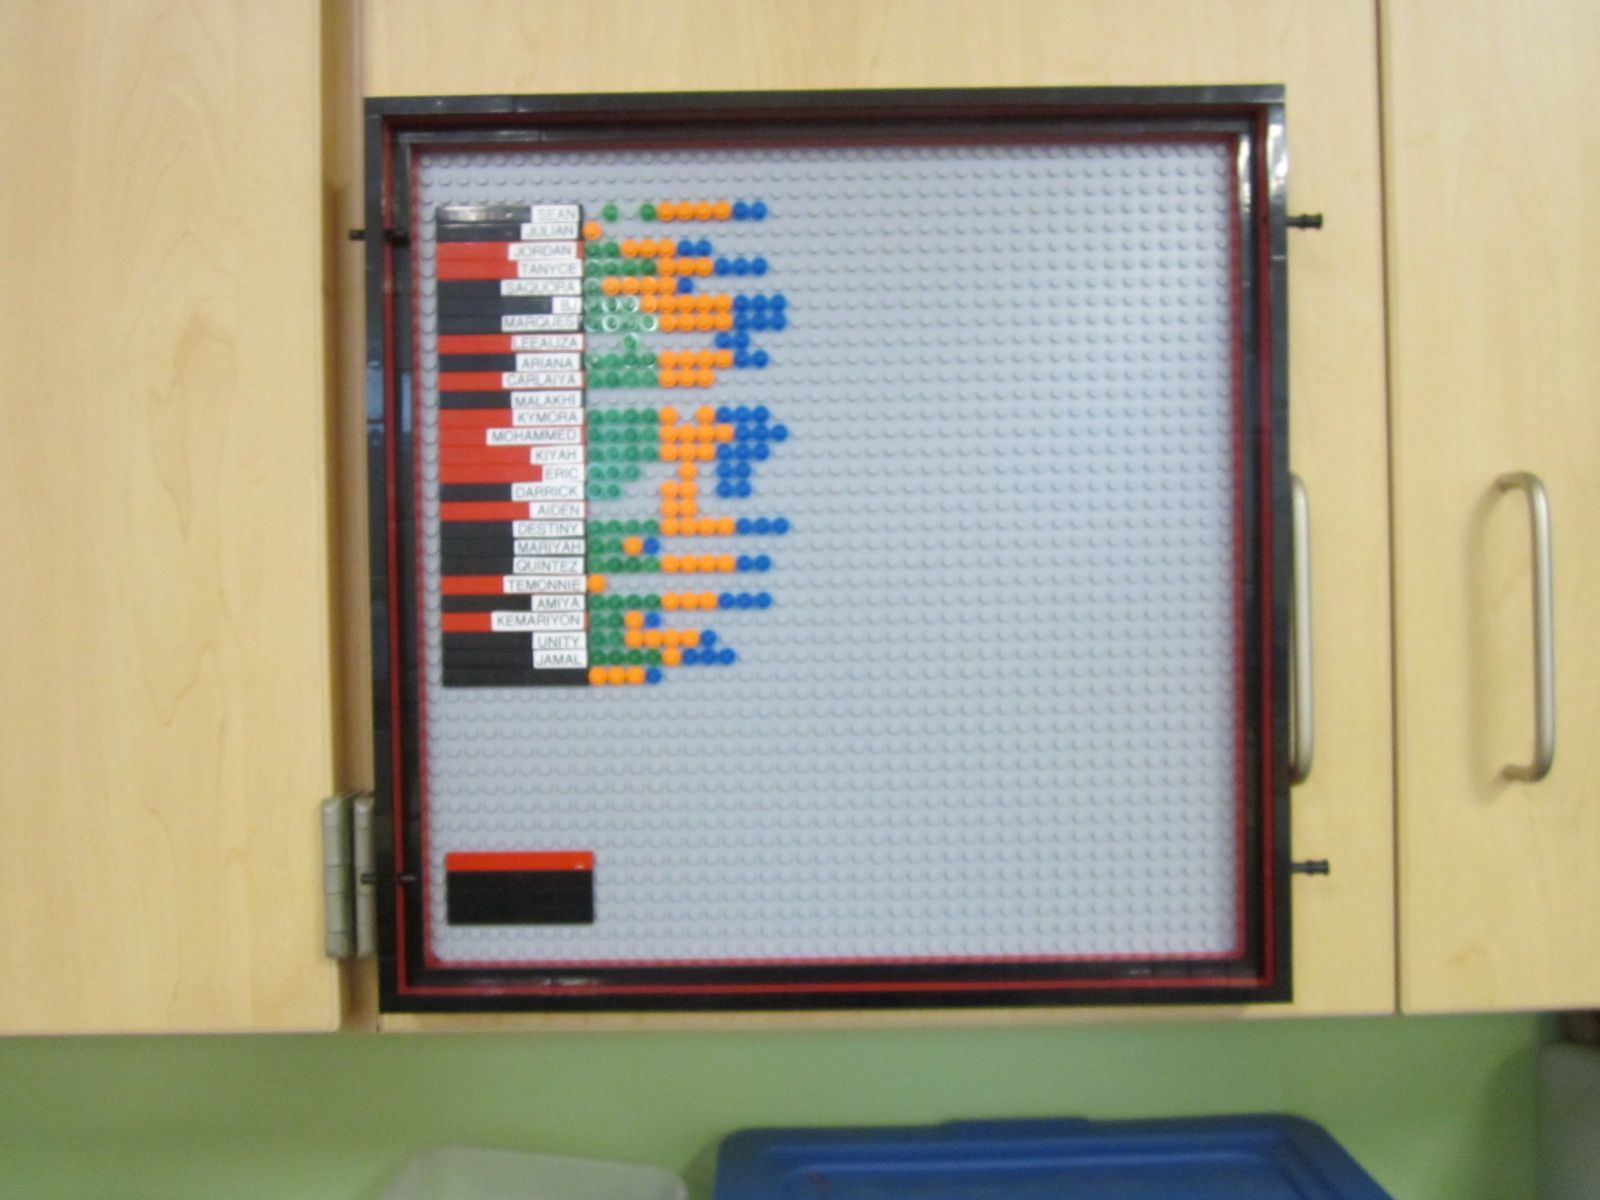 Homework chart is attached with Velcro Command Strips to the cabinet.